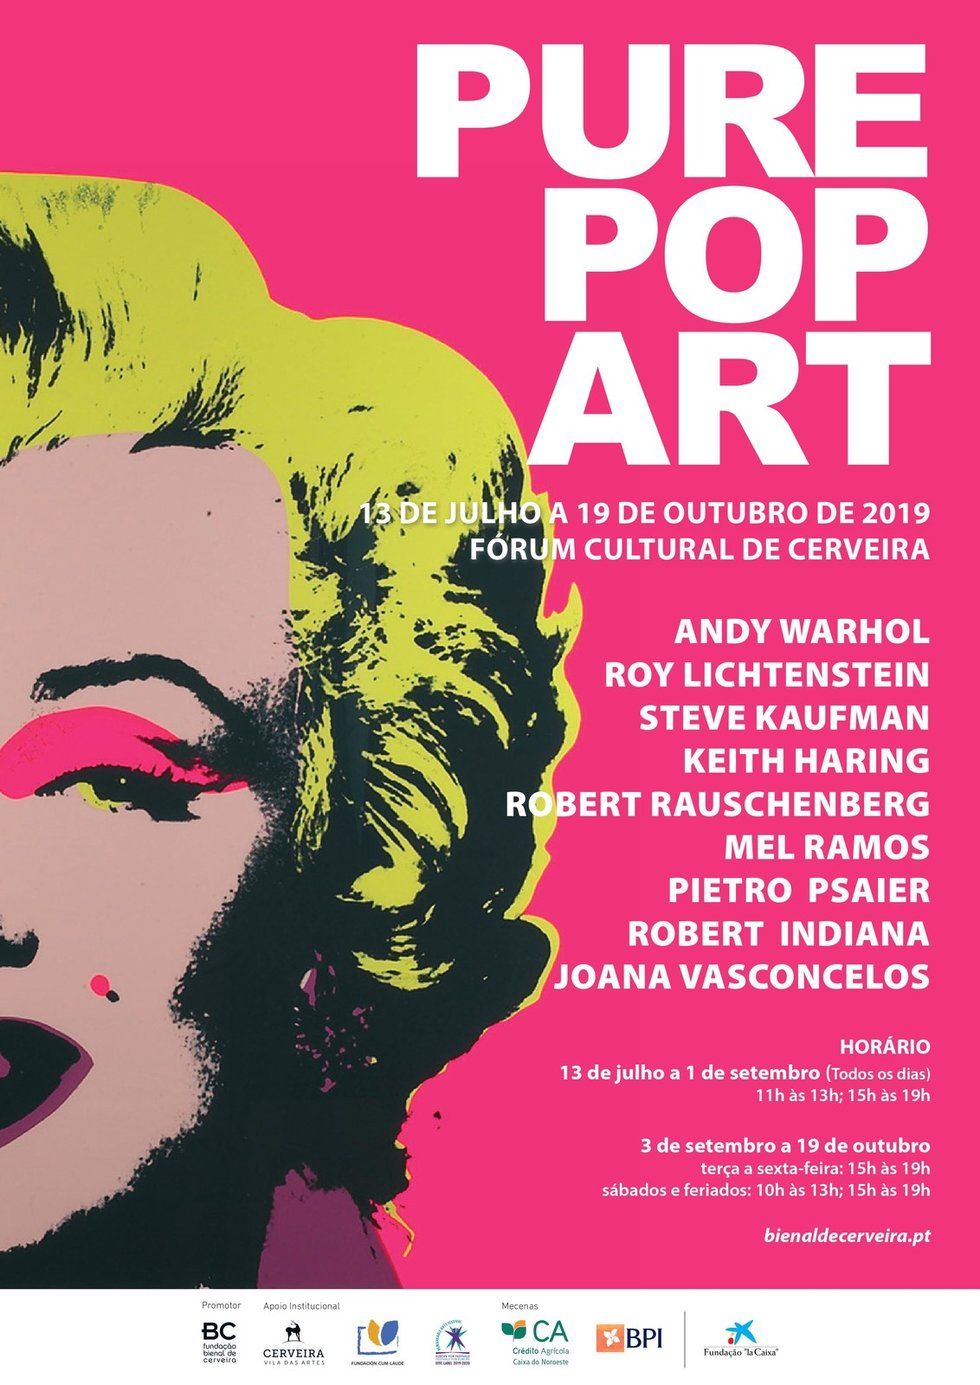 Pure pop art 1 980 2500